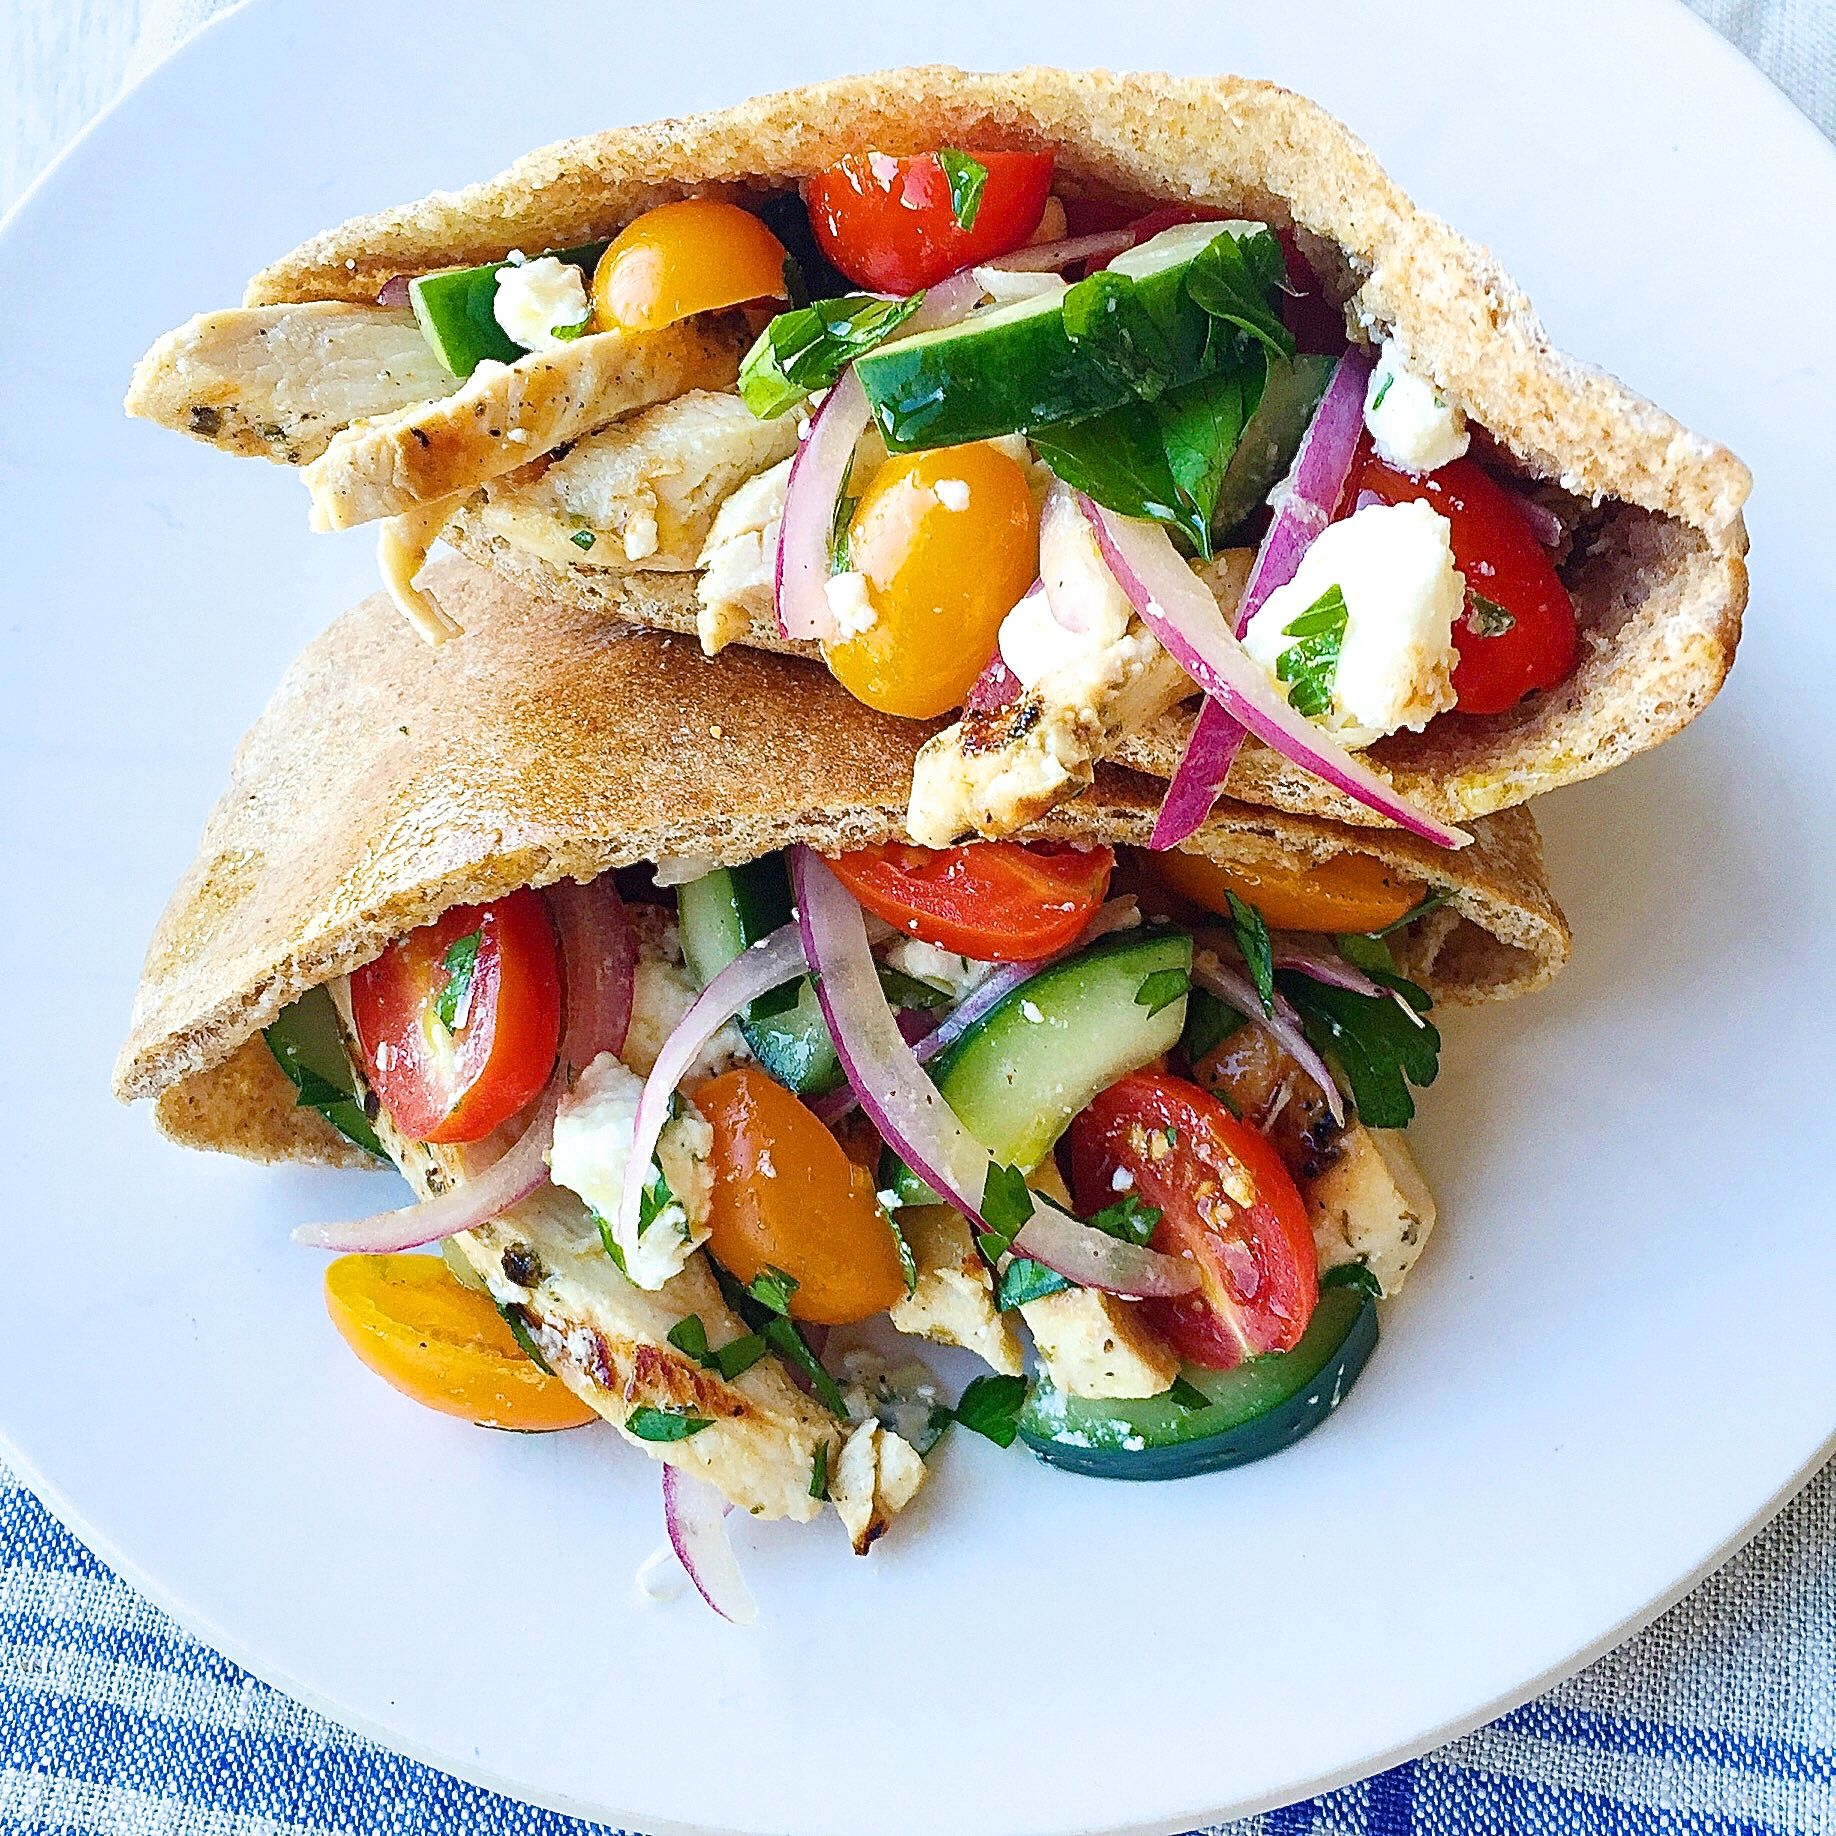 Best Greek Salad Pita Pockets With Grilled Chicken Recipe How To Make Greek Salad Pita Pockets With Grilled Chicken Delish Com